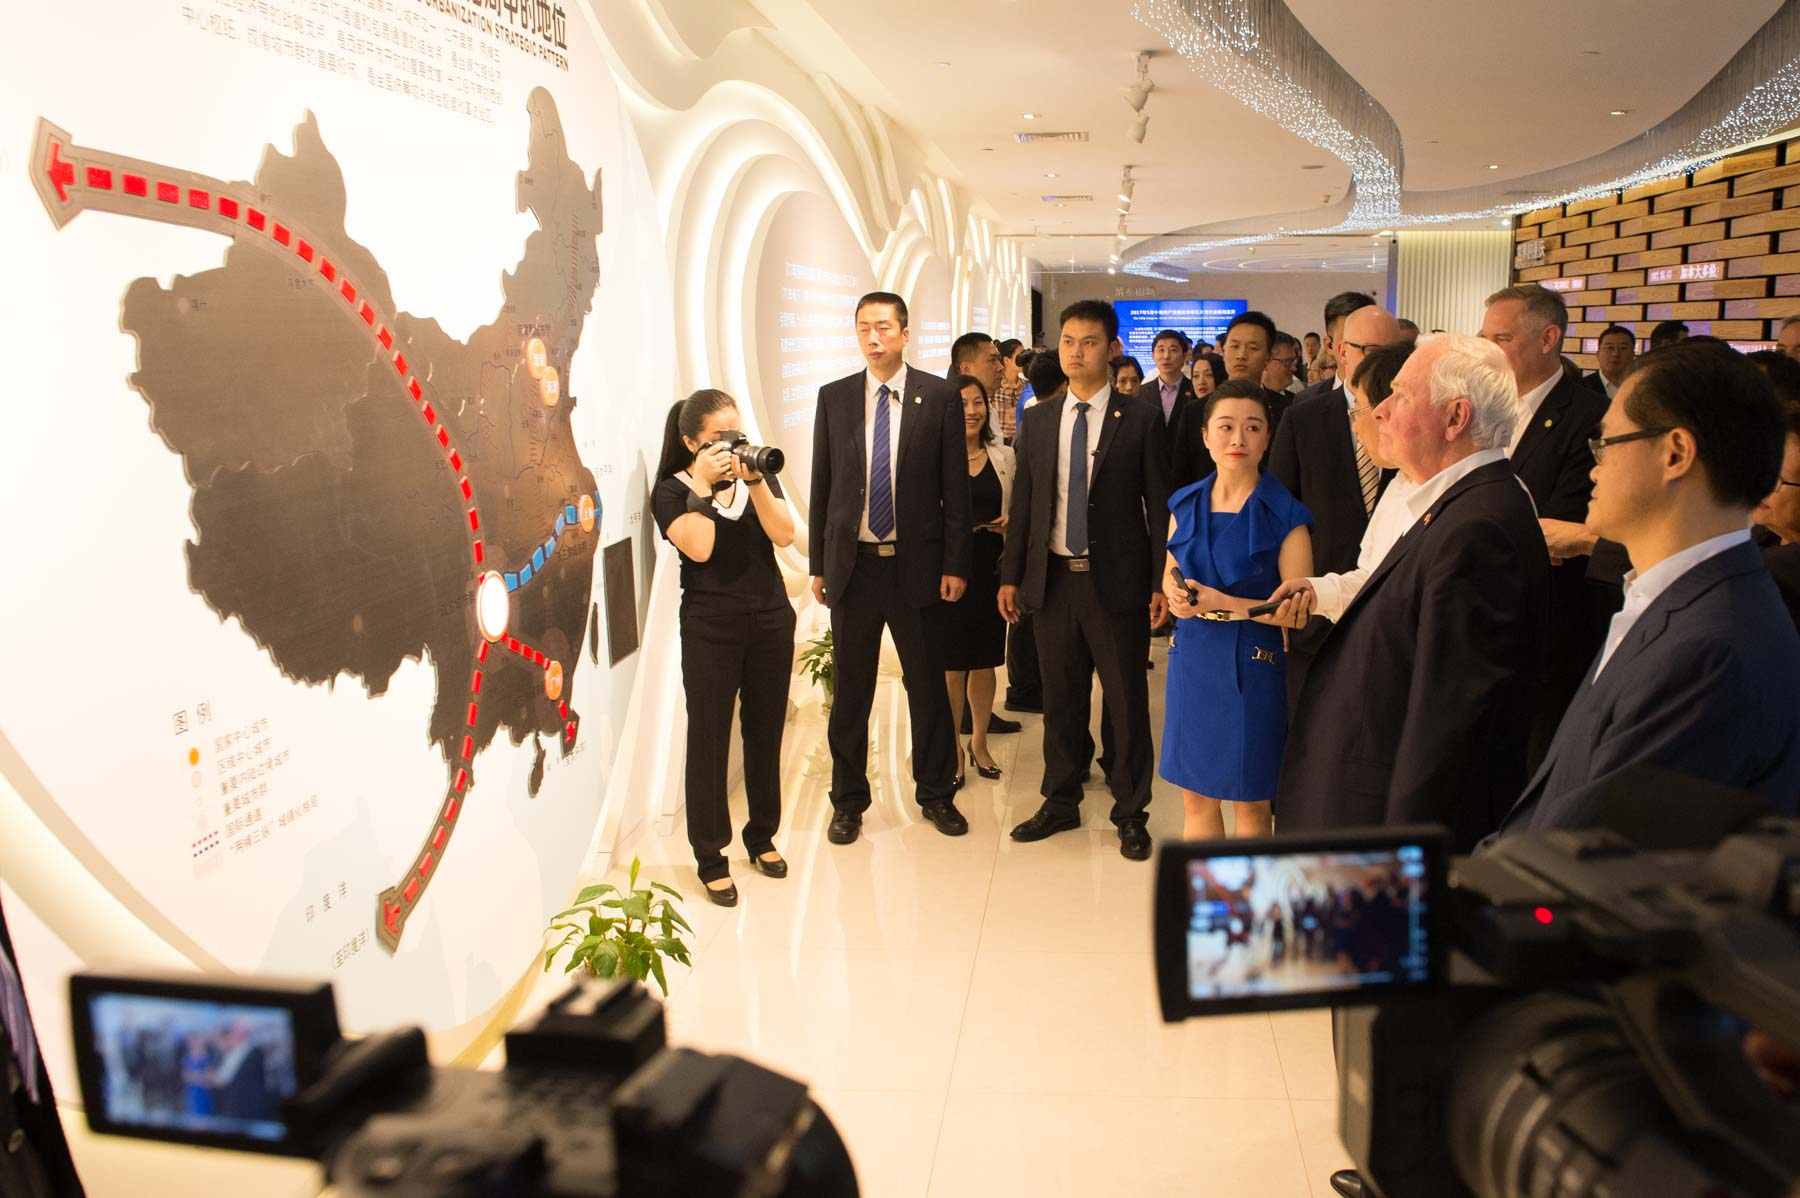 Later in the afternoon, the Governor General and members of the Canadian delegation visited Raffles City Chongqing, a large-scale development project designed by Canadian architect Moshe Safdie and located at the city's Chaotianmen docks.